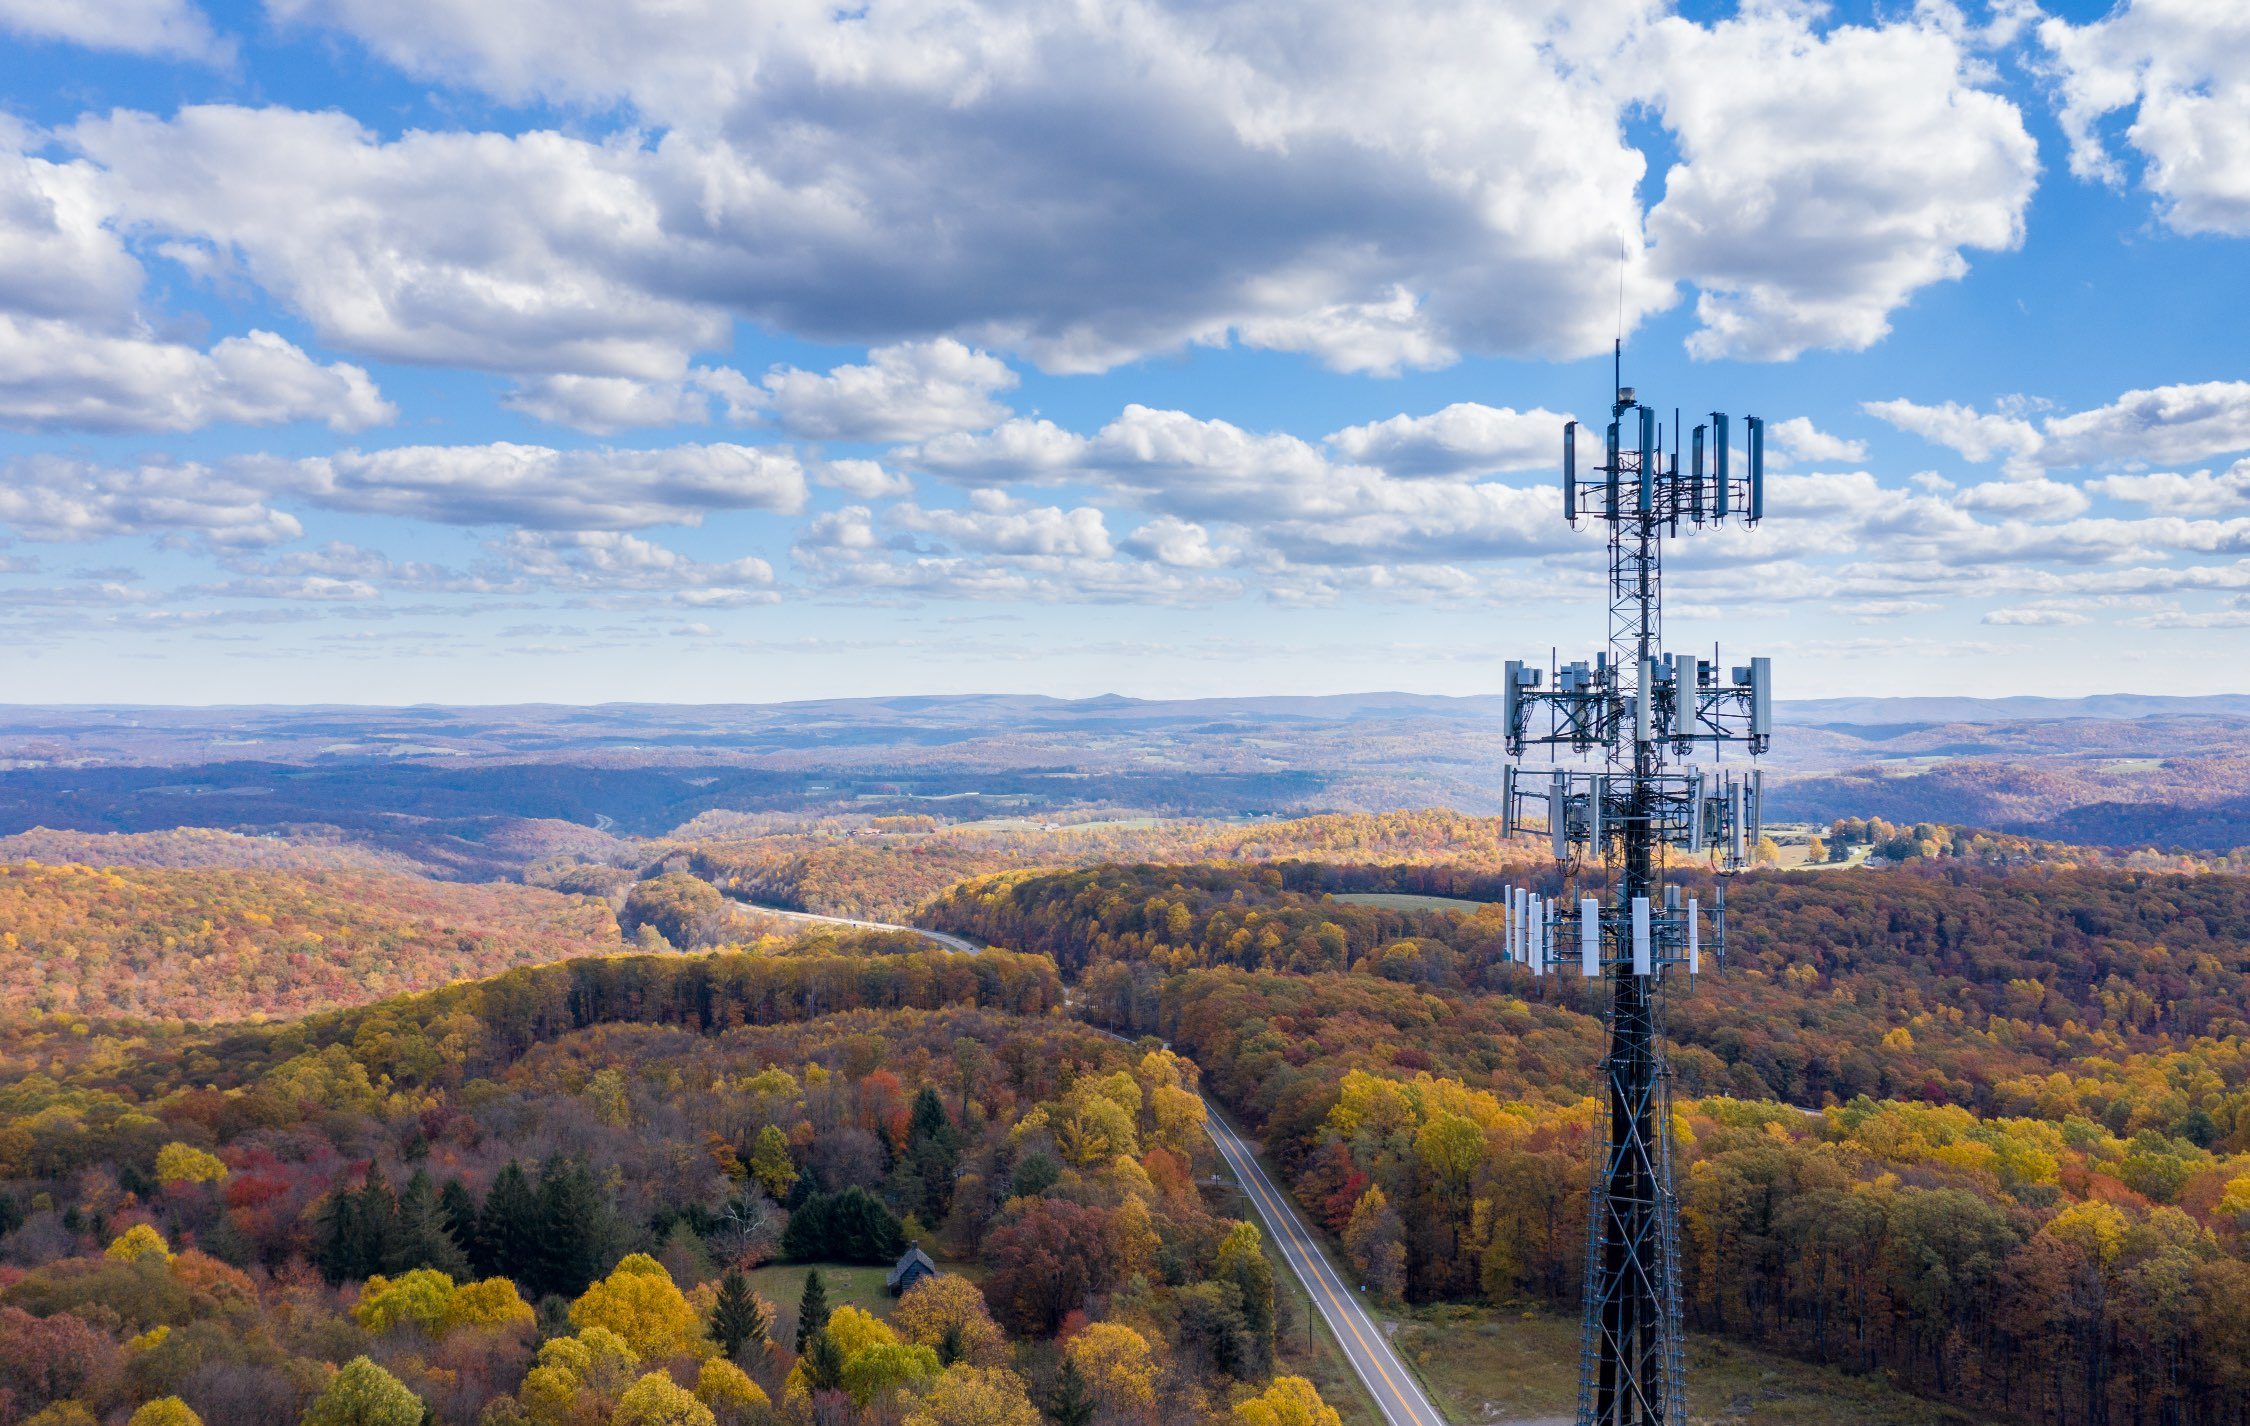 Cell tower overlooking a forest in the fall